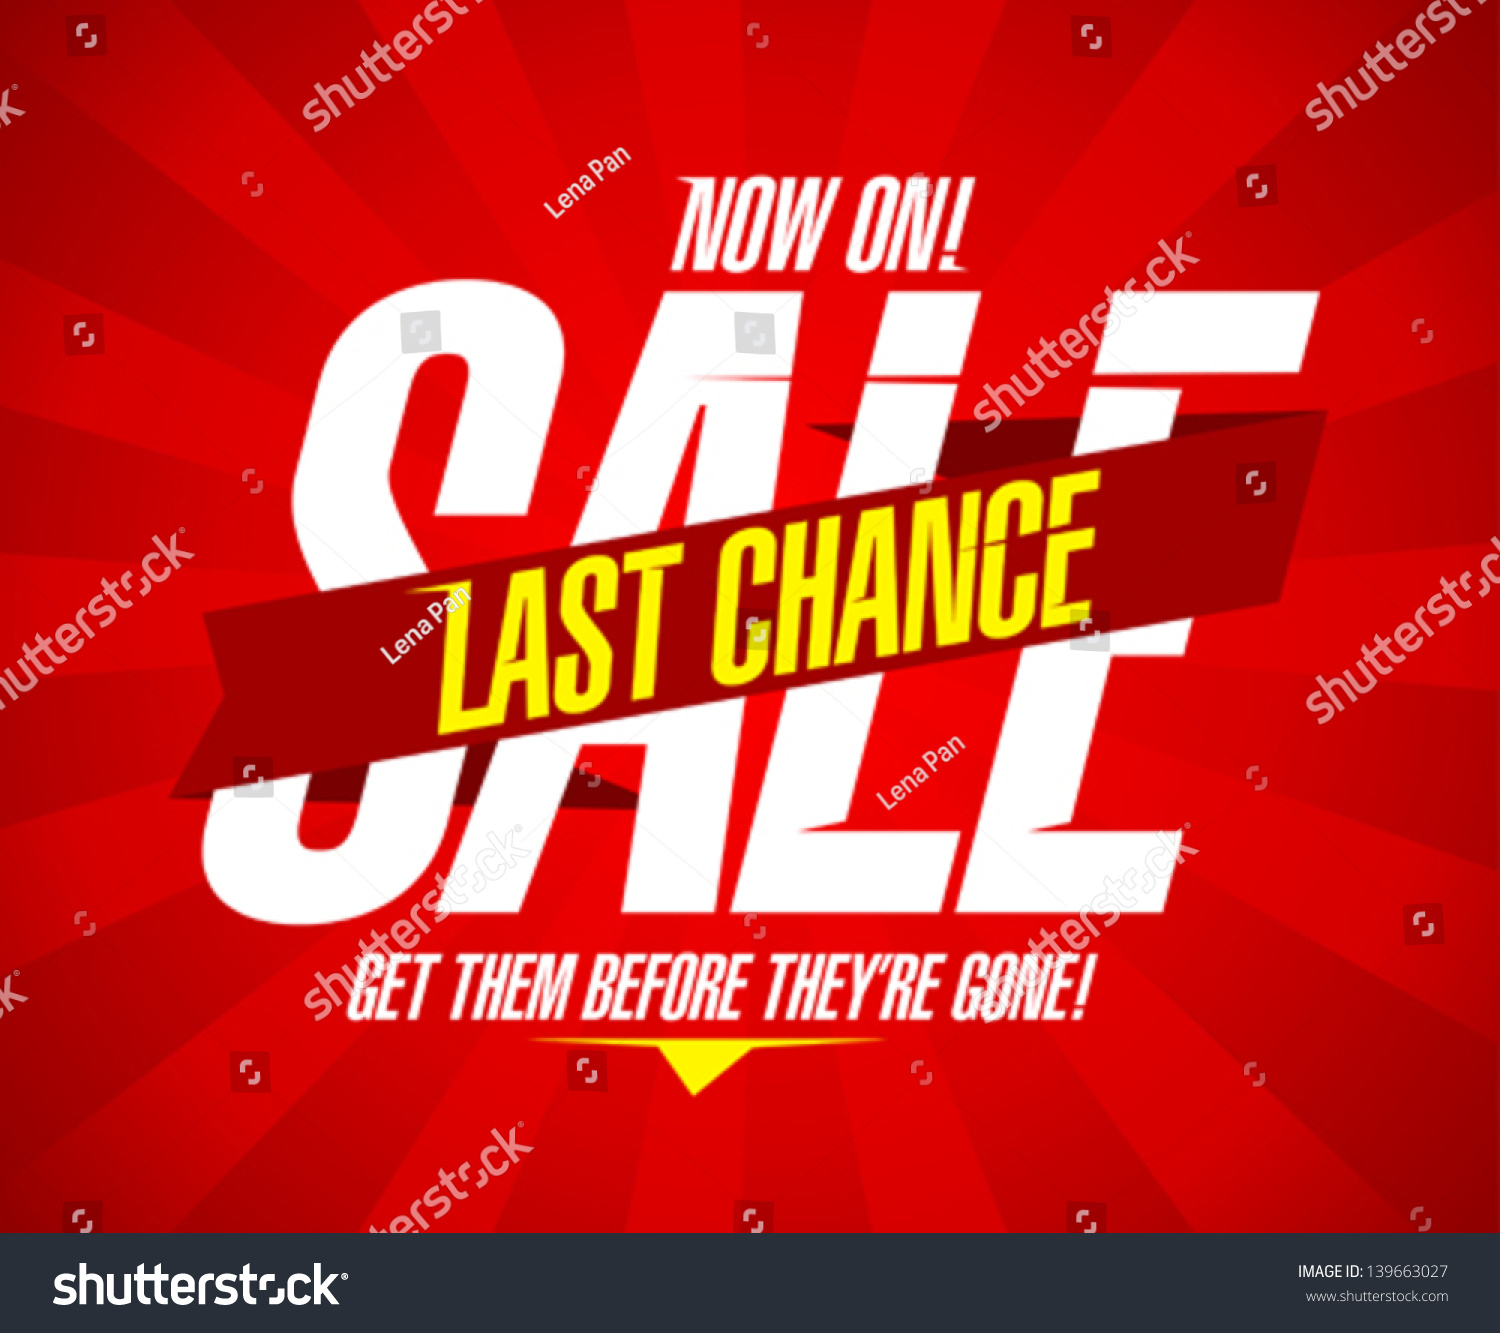 Now On Last Chance Sale Design Stock Vector 139663027 - Shutterstock